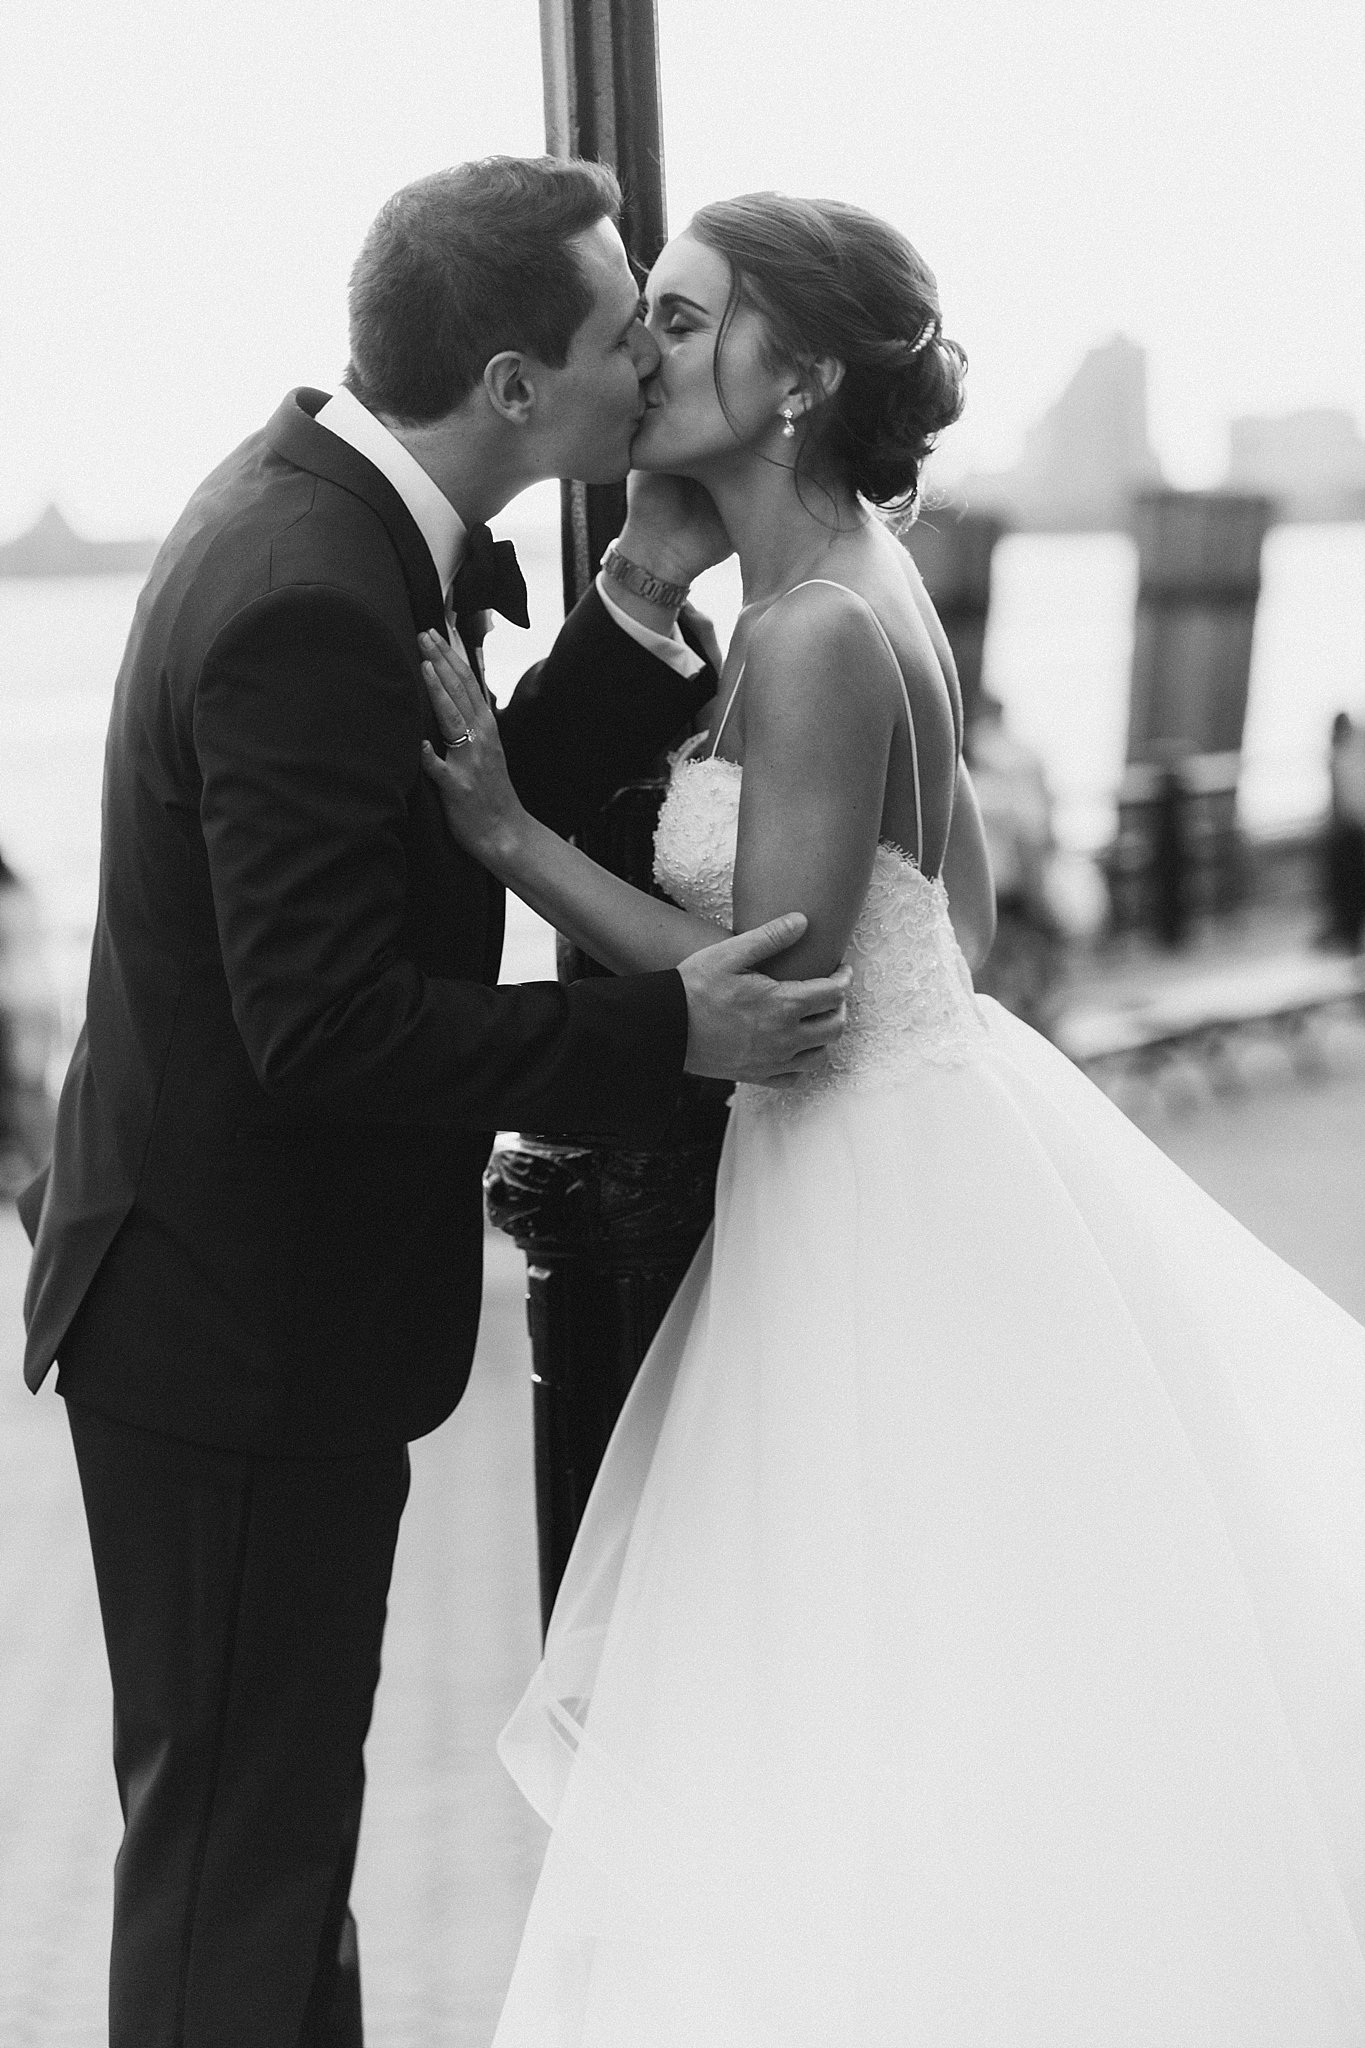 Married Couple's Kiss, , photographed by Susan Shek Wedding Photography in New York City, NY.